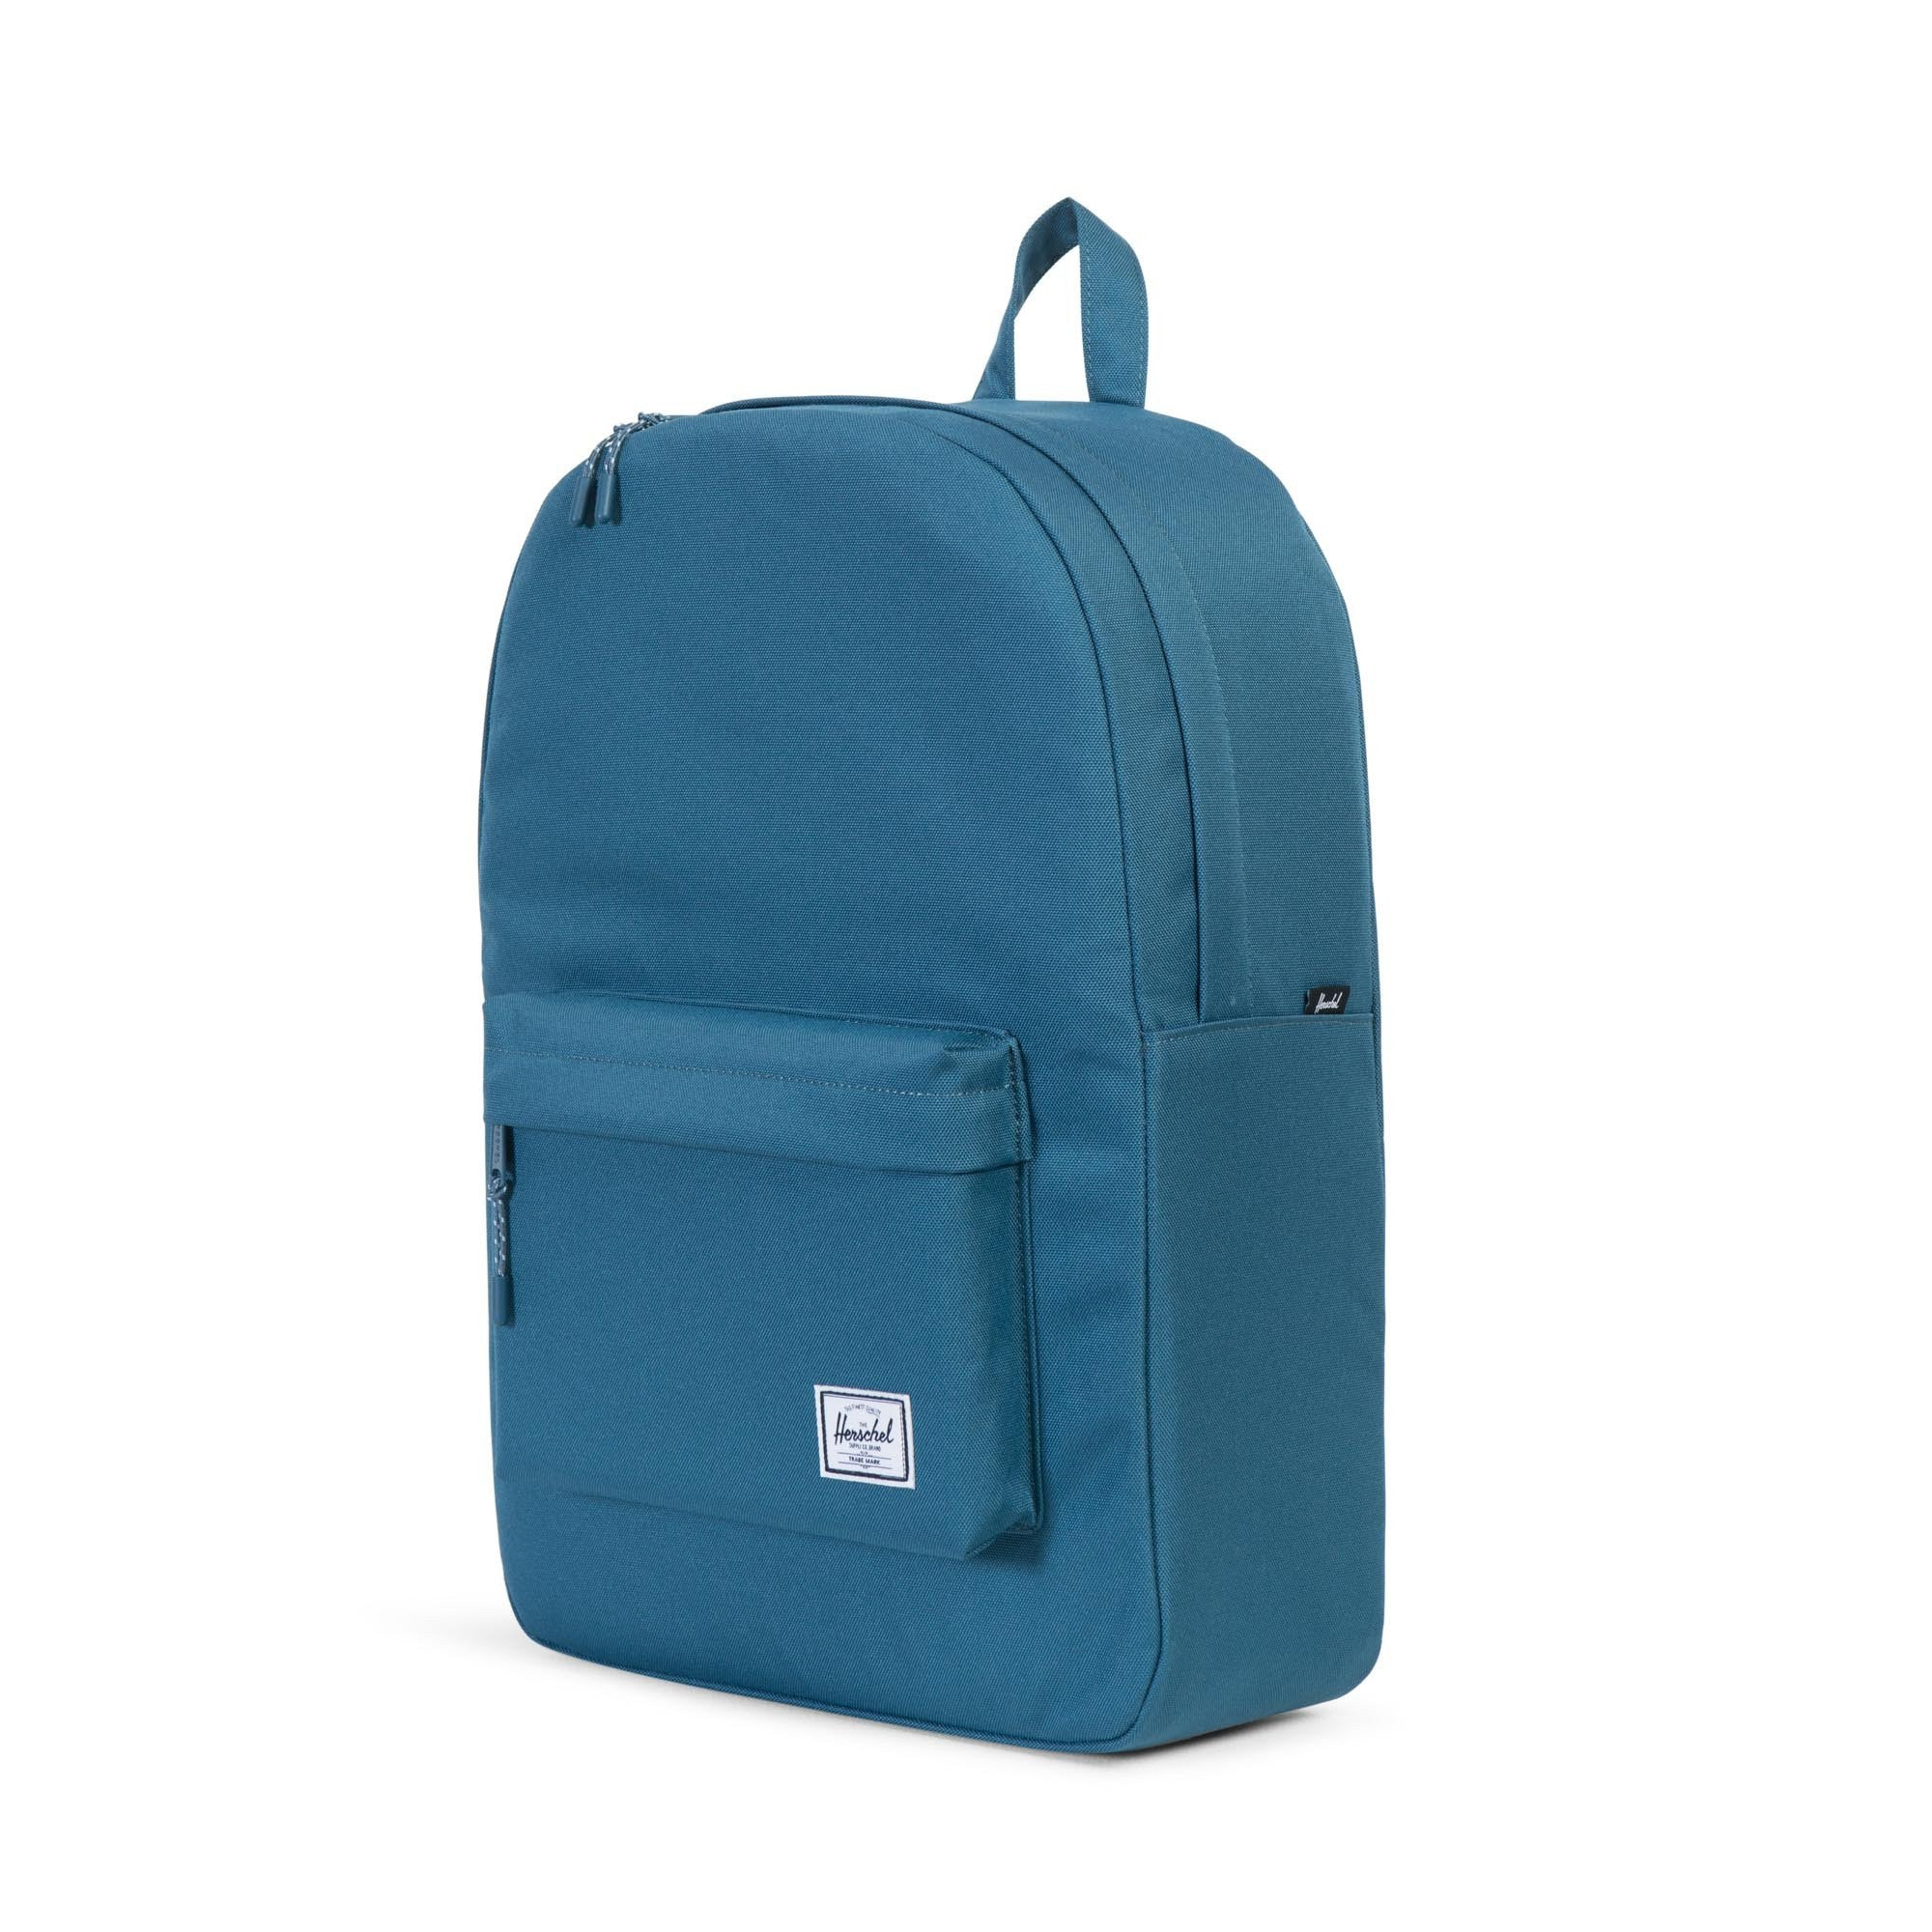 Herschel Supply Co. - Classic Backpack, Indian Teal - The Giant Peach - 3